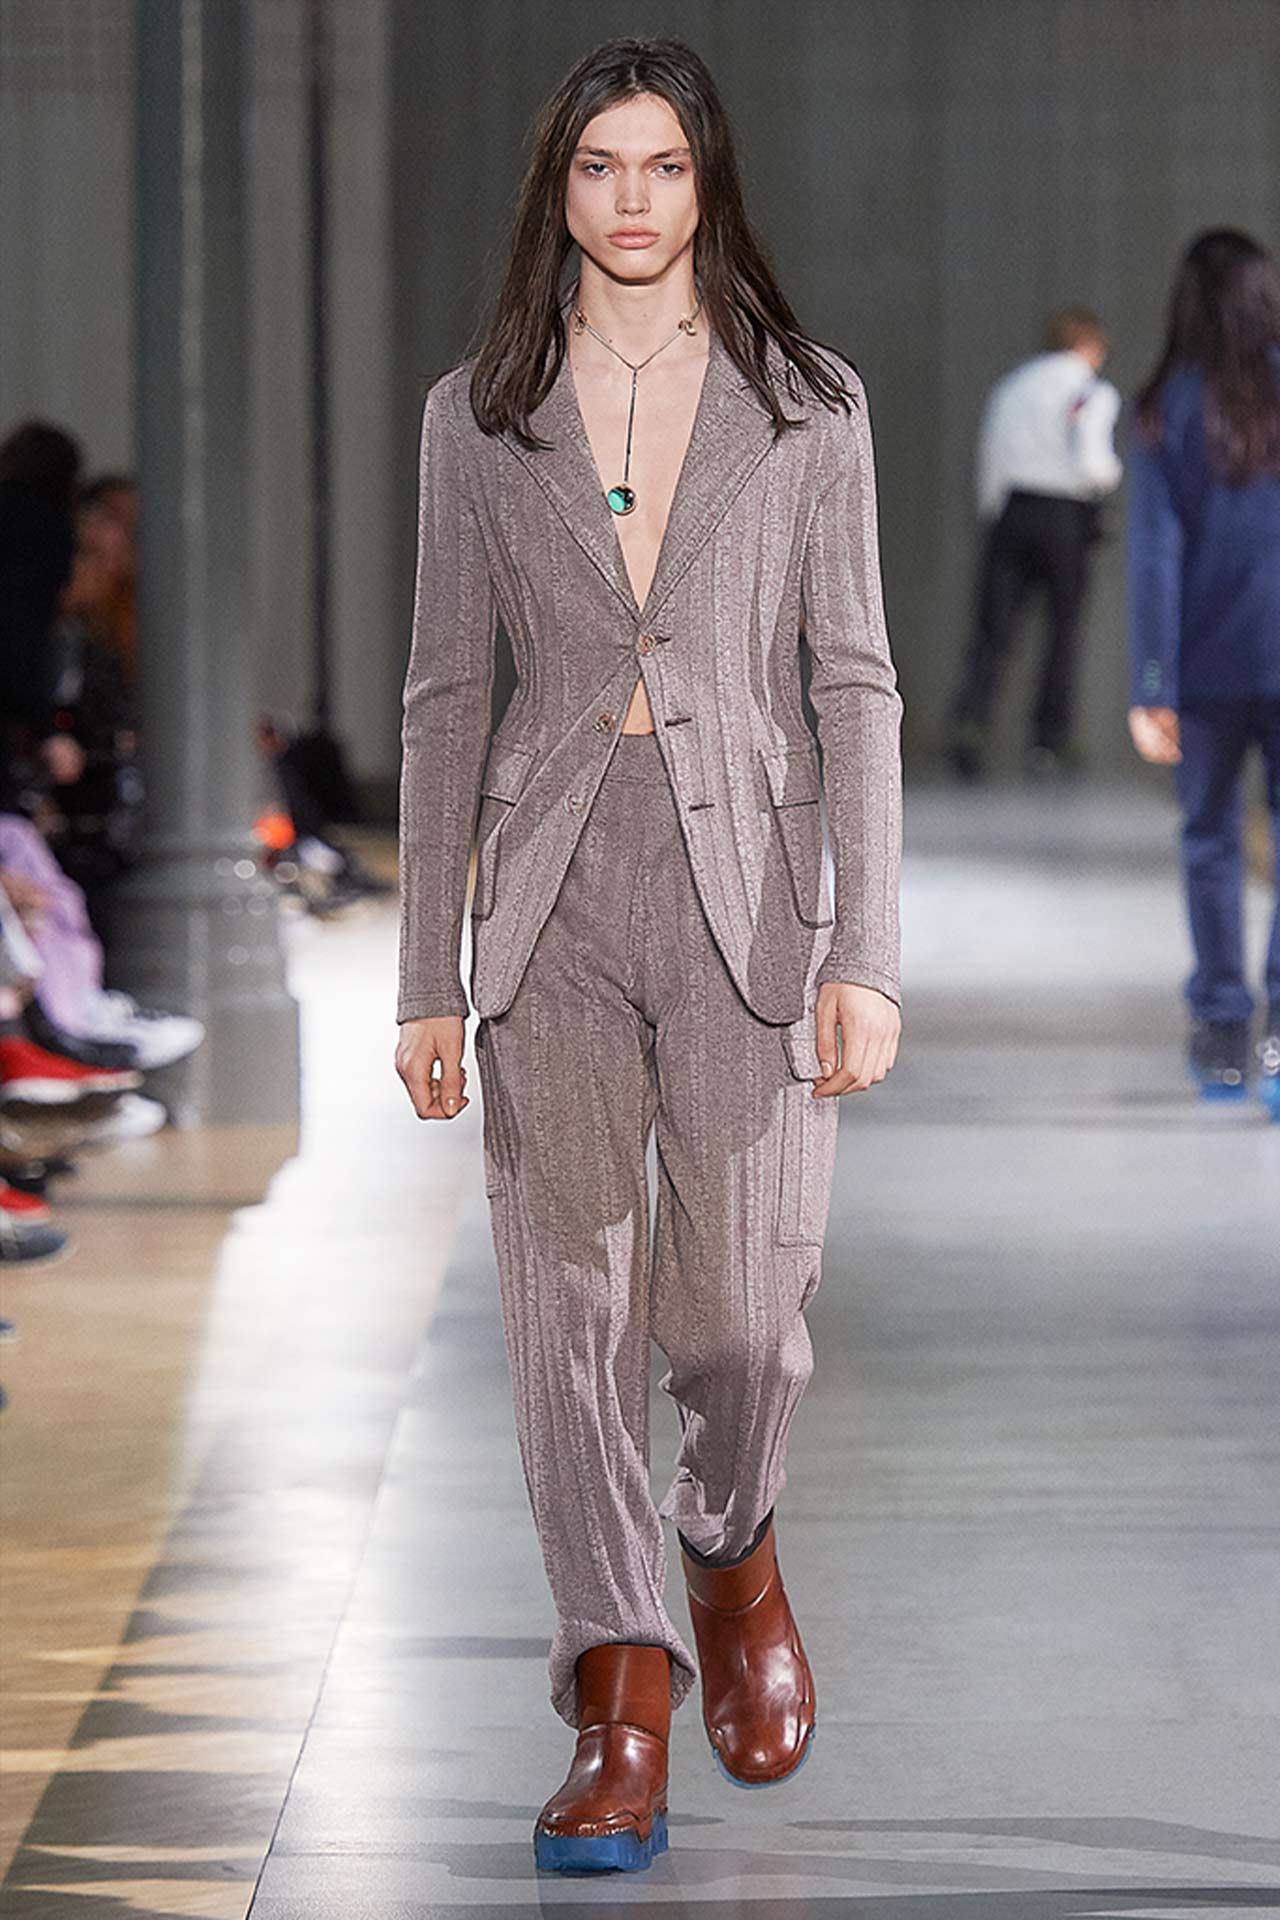 Look Fall/Winter 2019, image 21